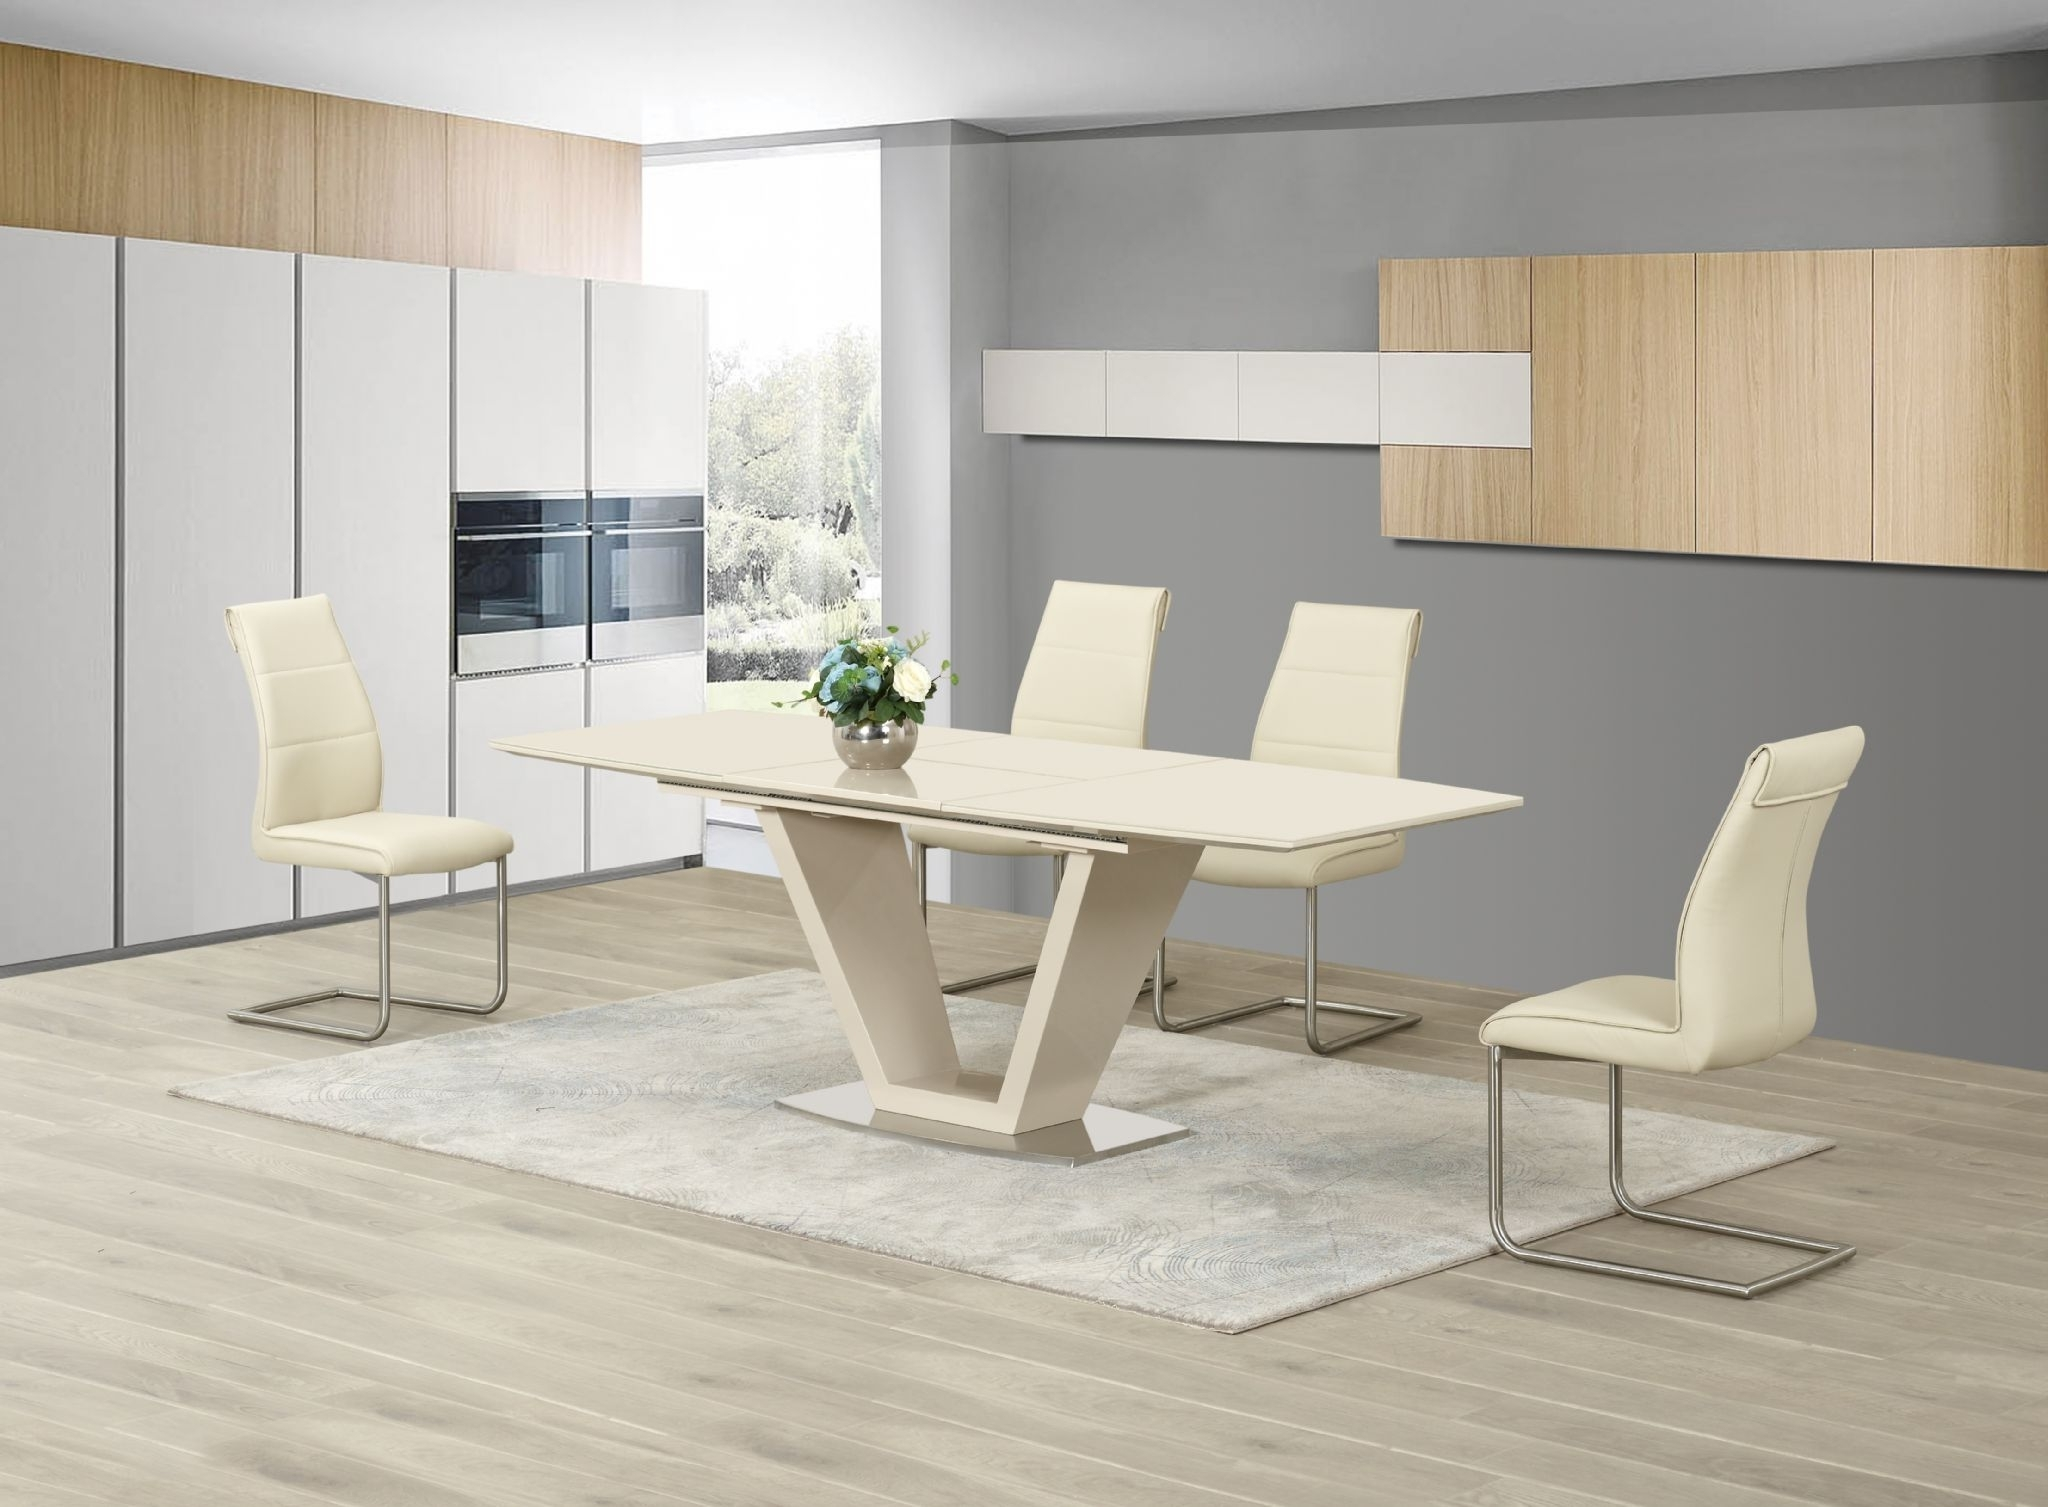 Current Ga Loriga Cream Gloss Glass Designer Dining Table Extending 160/220 Cm Chairs 2 Colours Intended For Black Glass Dining Tables And 6 Chairs (View 24 of 25)